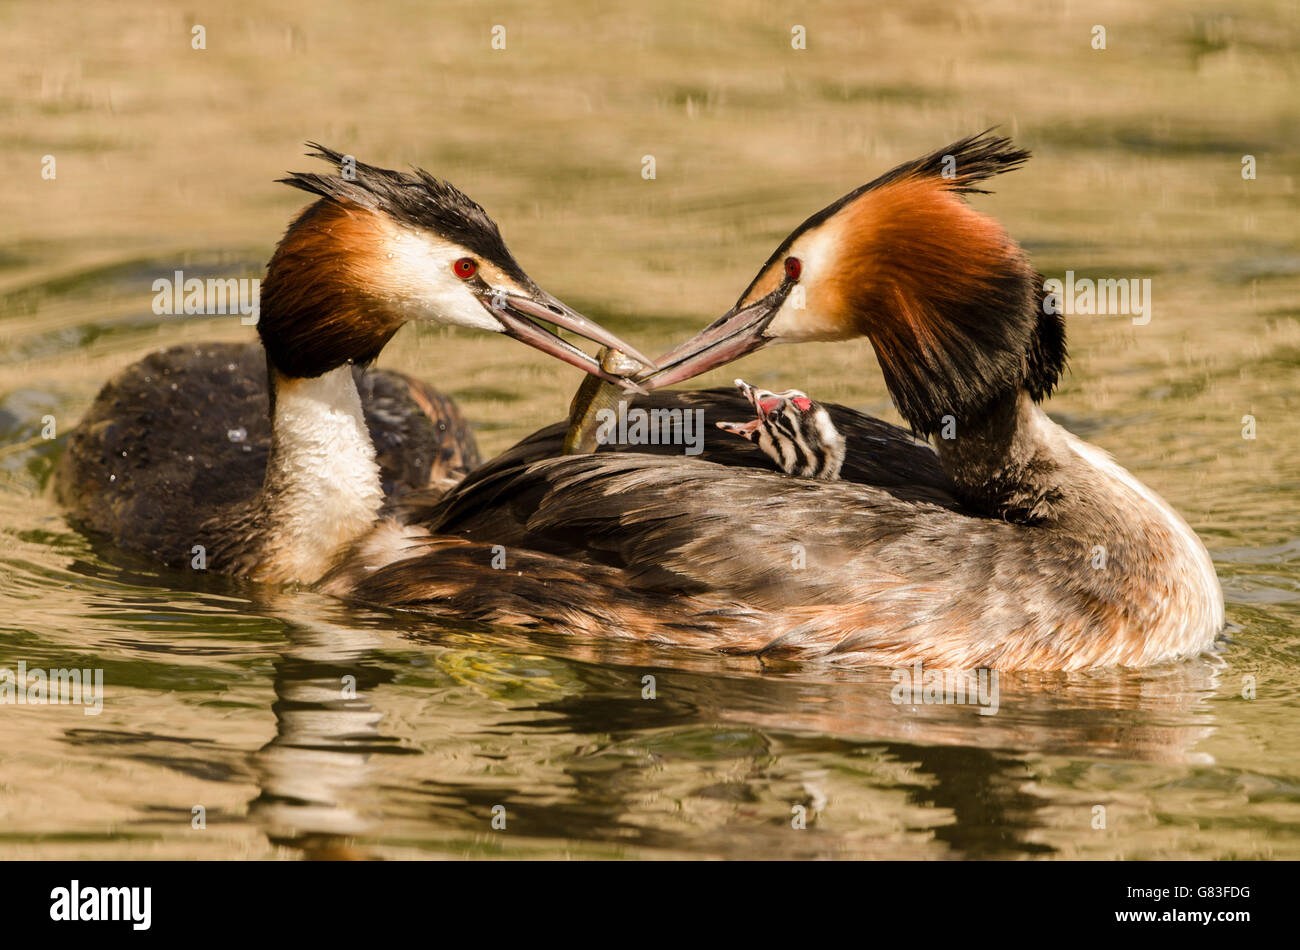 Great Crested Grebes (podiceps cristatus) - Stock Image